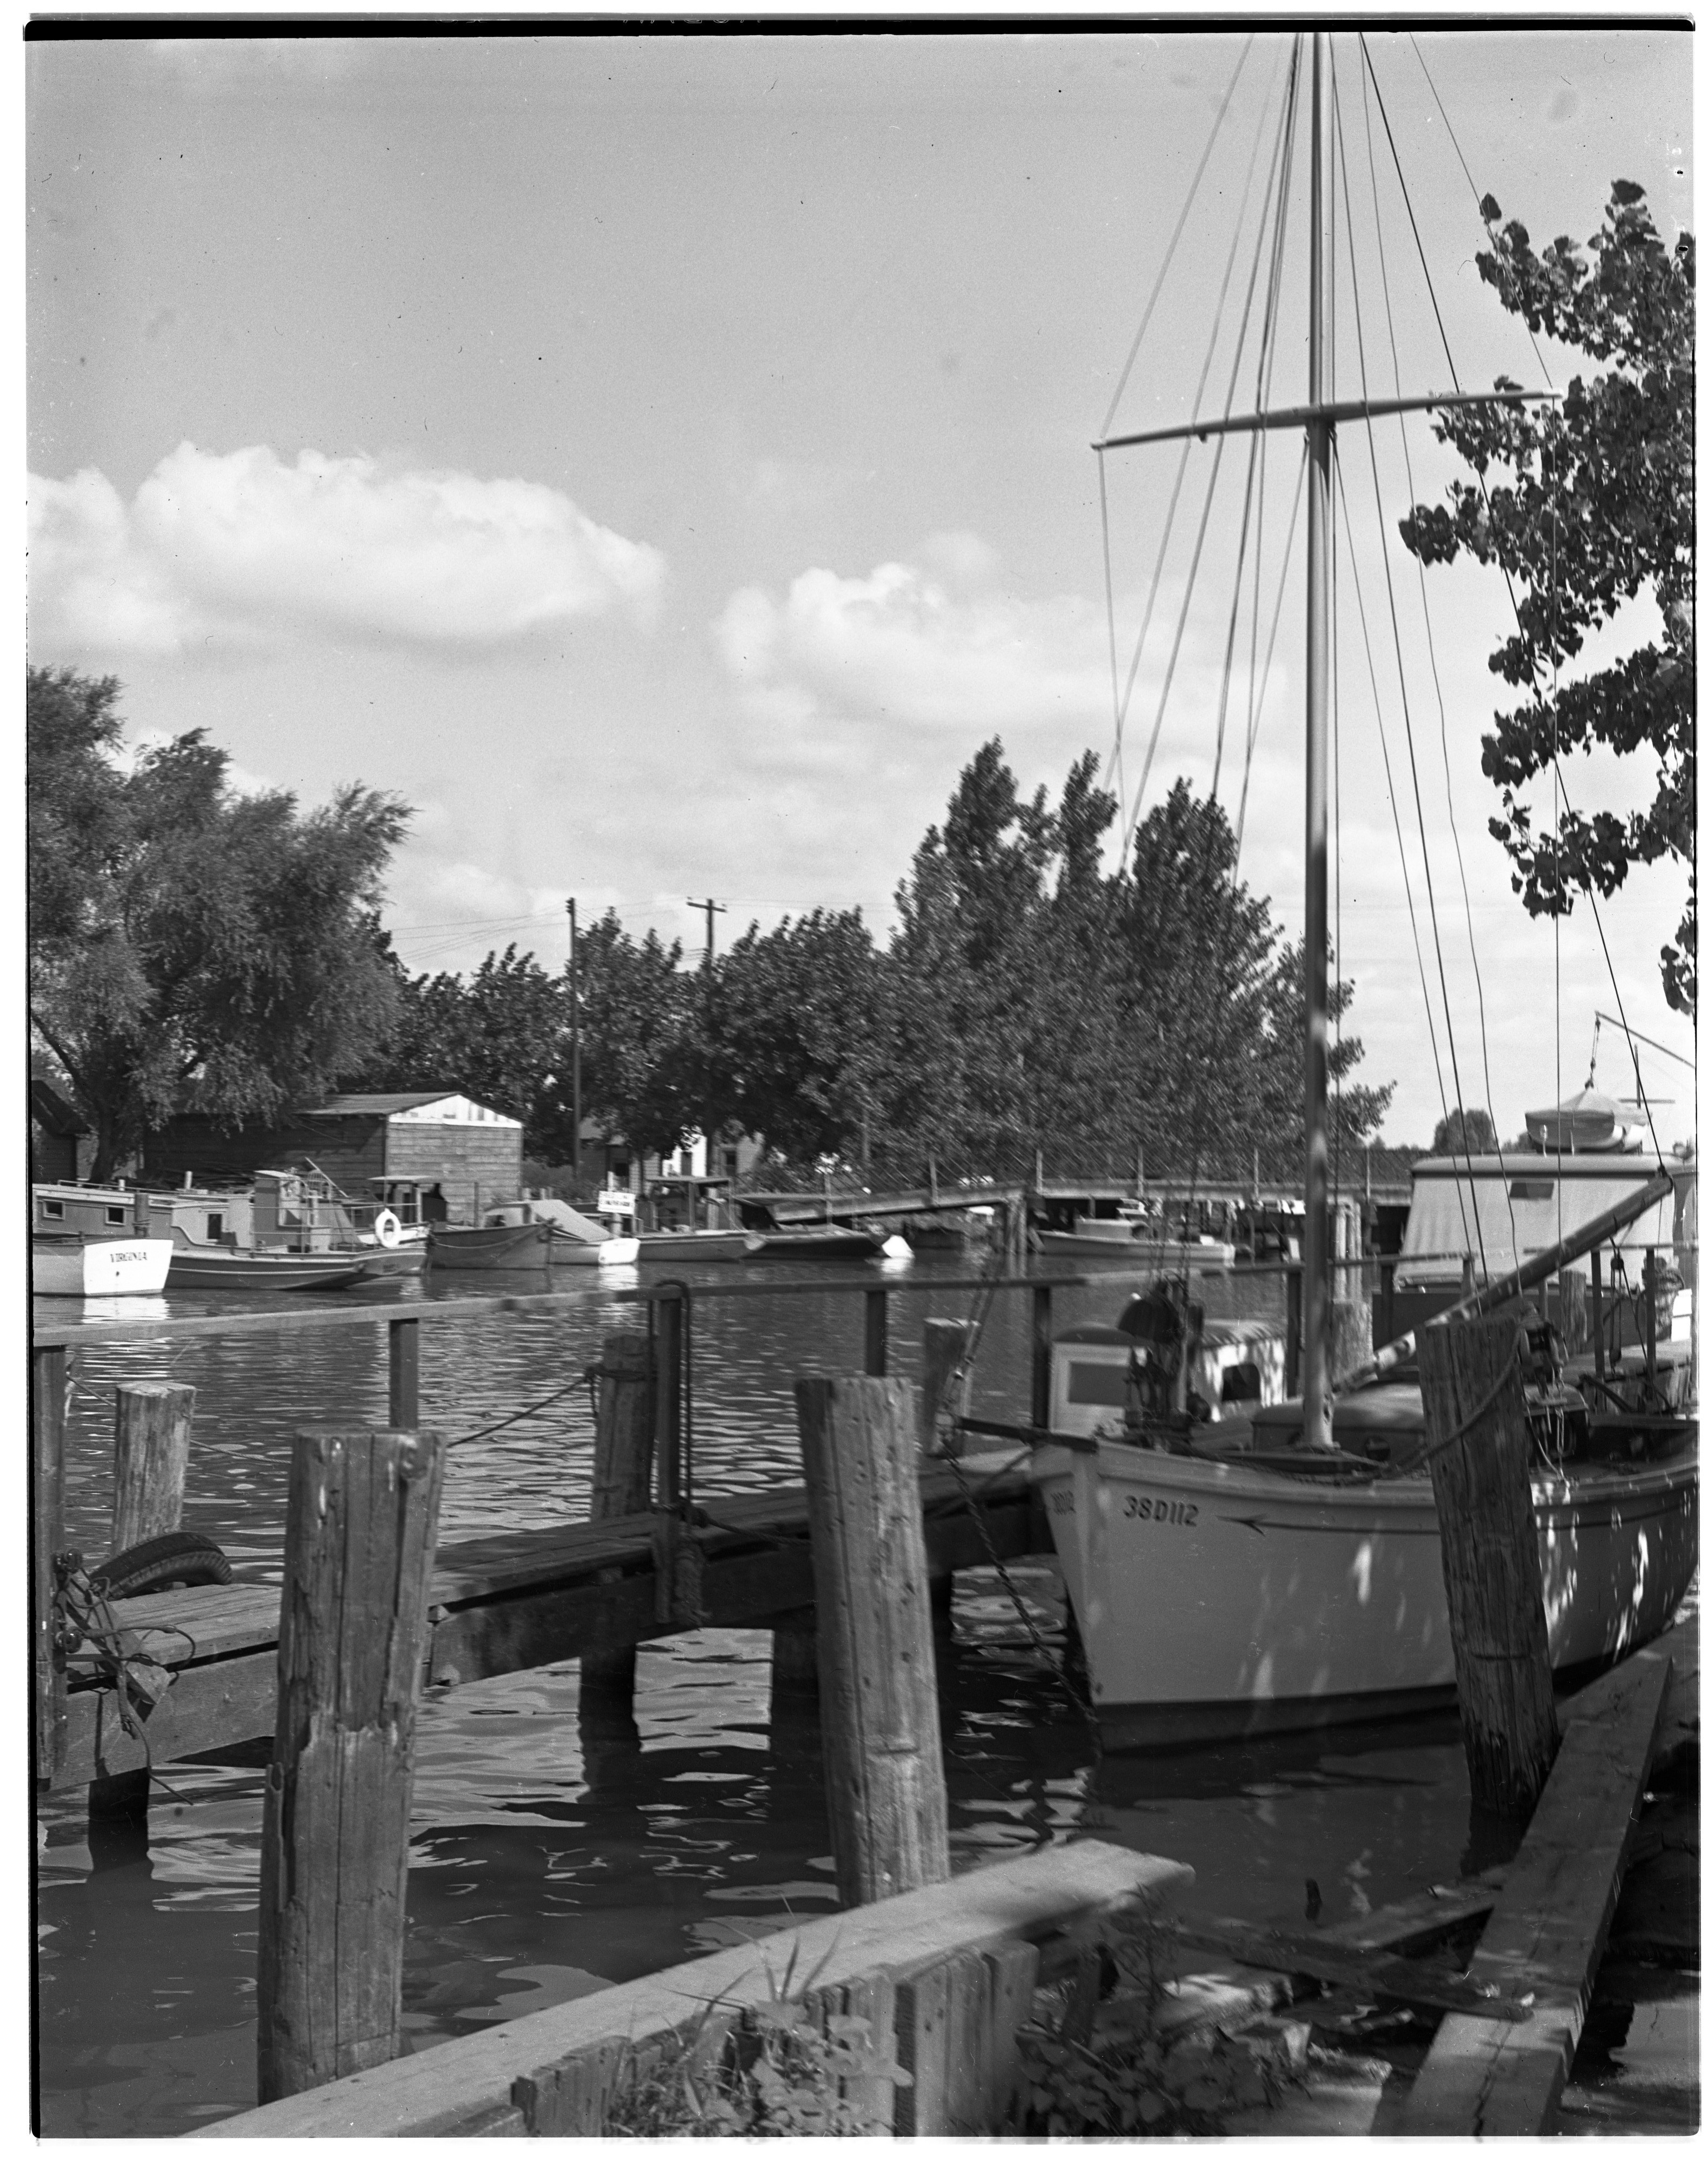 Clinton River and St Clair Shores | Ann Arbor District Library